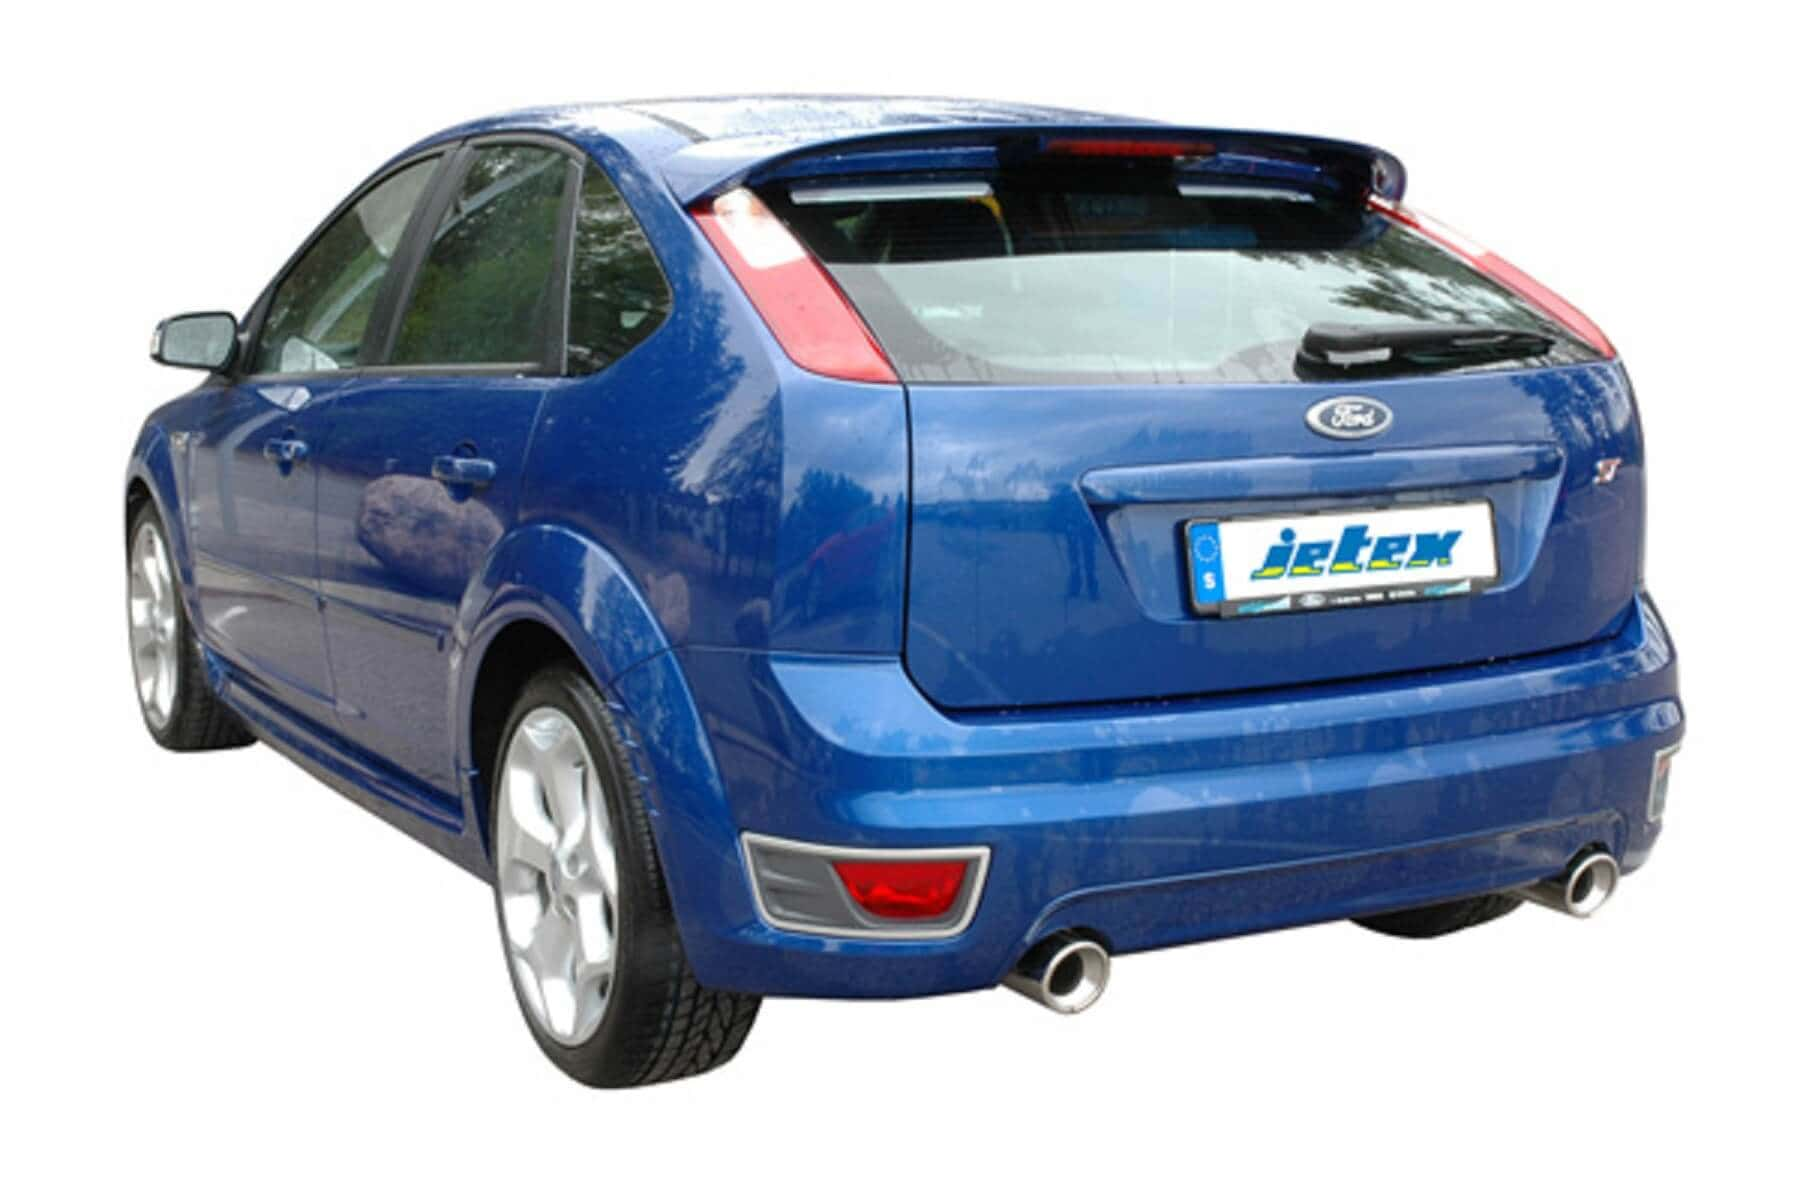 Ford Focus St Jetex Performance Exhaust System 2 5 Stainless Steel Cat Back With Round 100mm Tail Pipes Part Werx